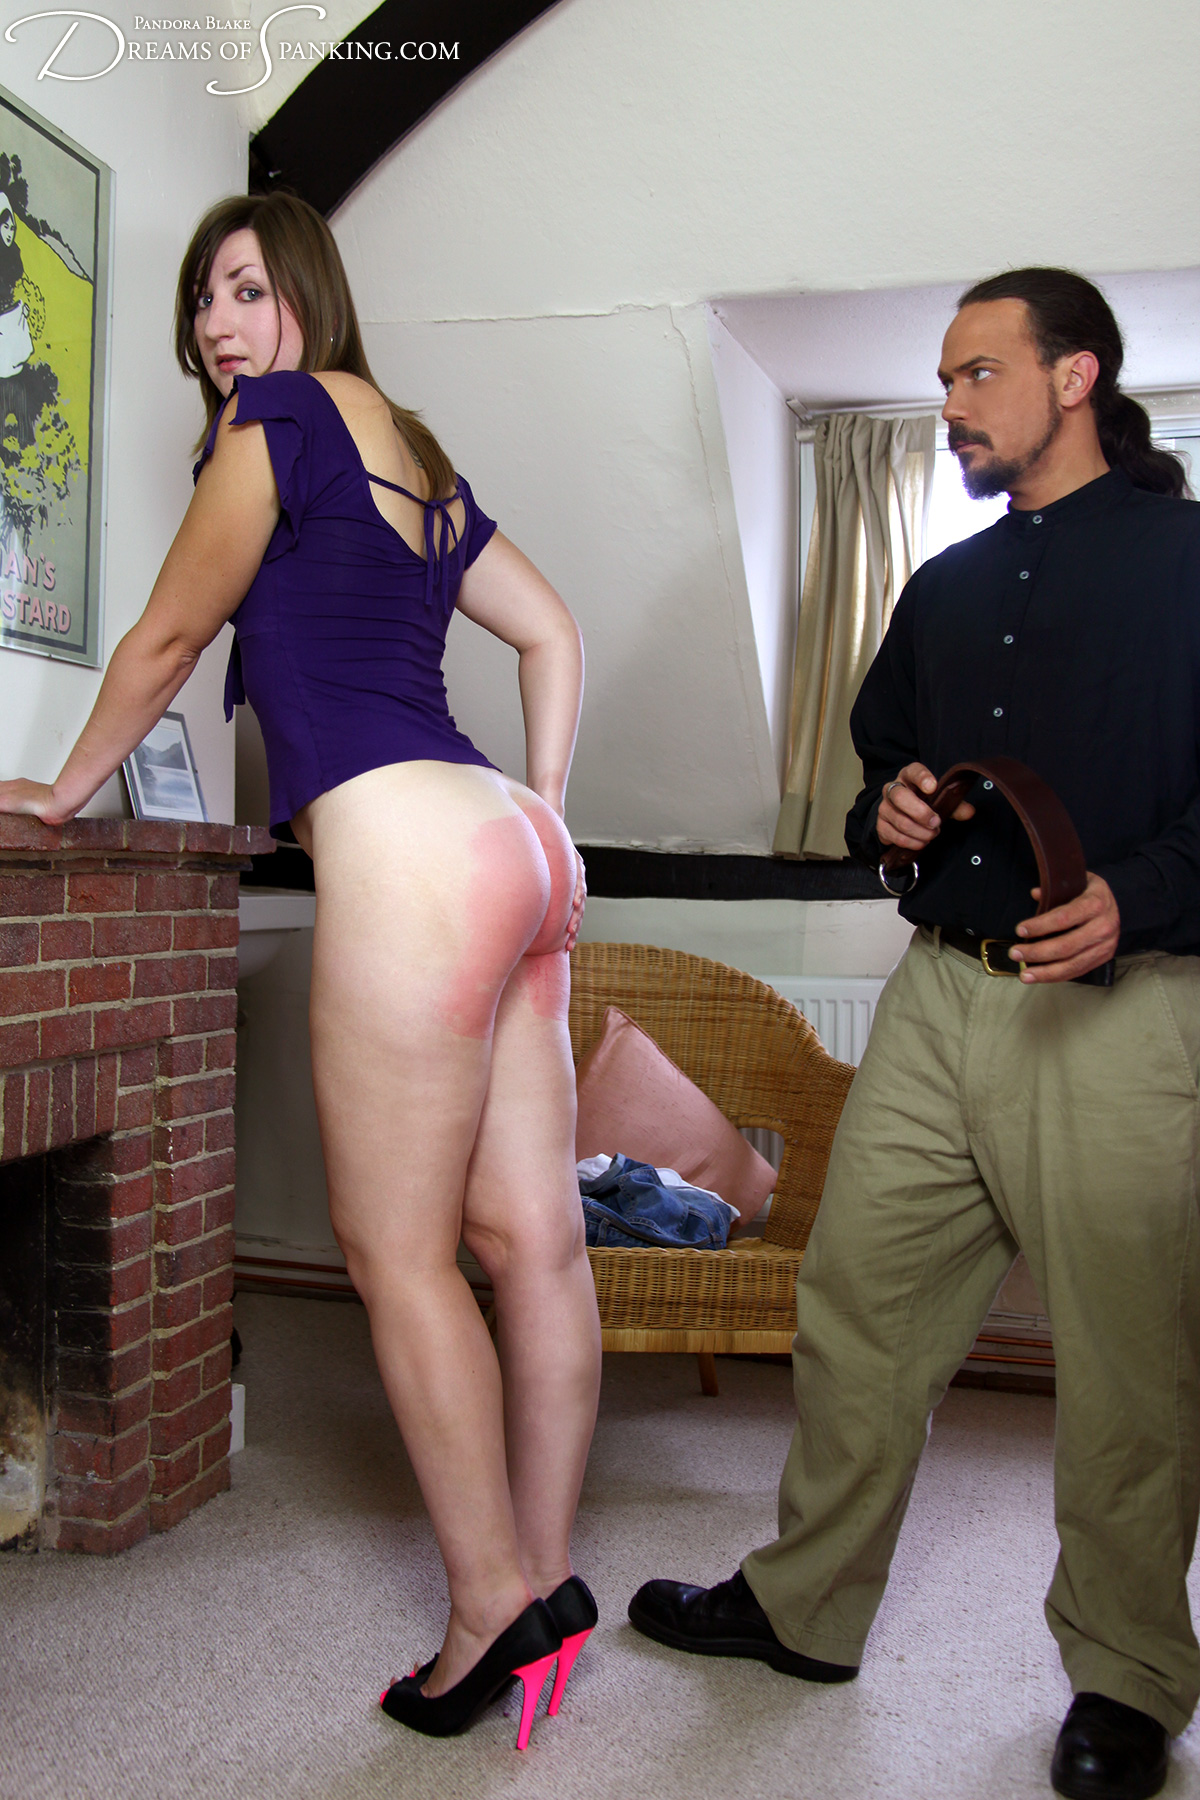 men-who-spank-women-with-their-belt-cum-swap-tube